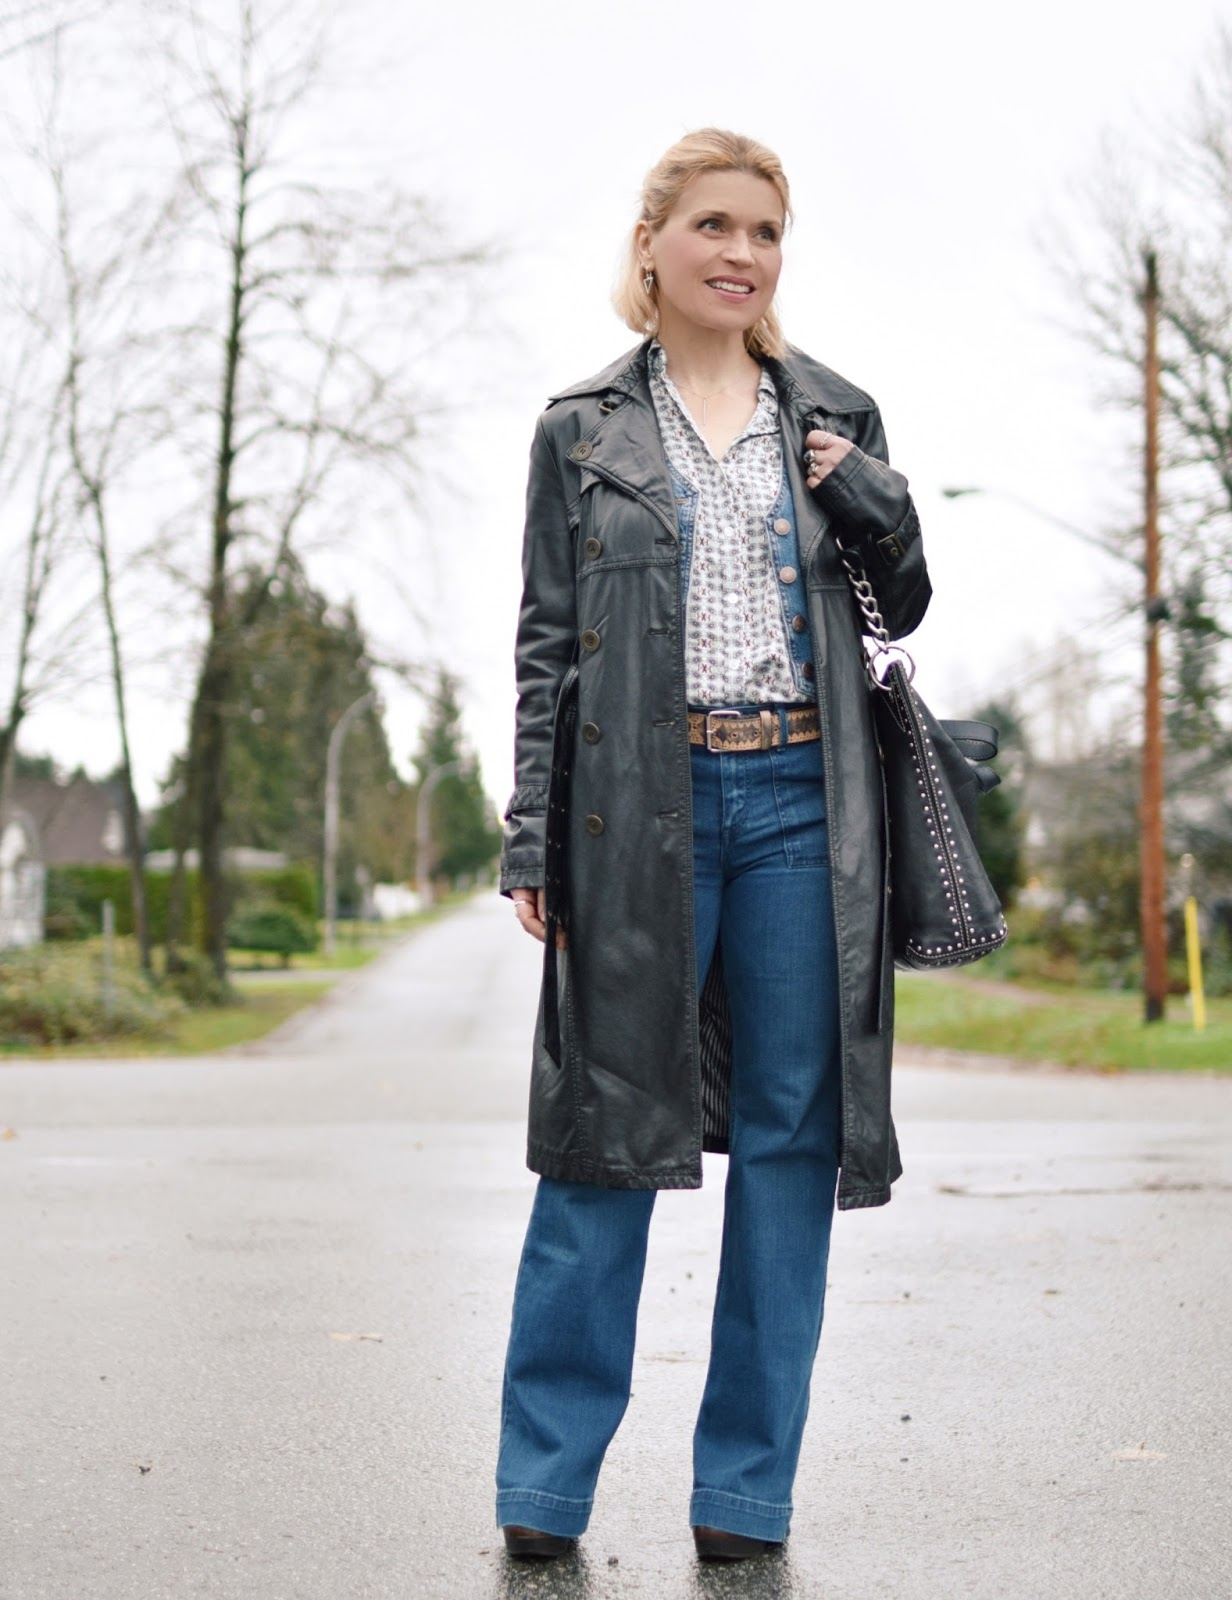 Monika Faulkner outfit inspiration - styling a faux-leather trench with a denim vest, patterned shirt, and flare jeans